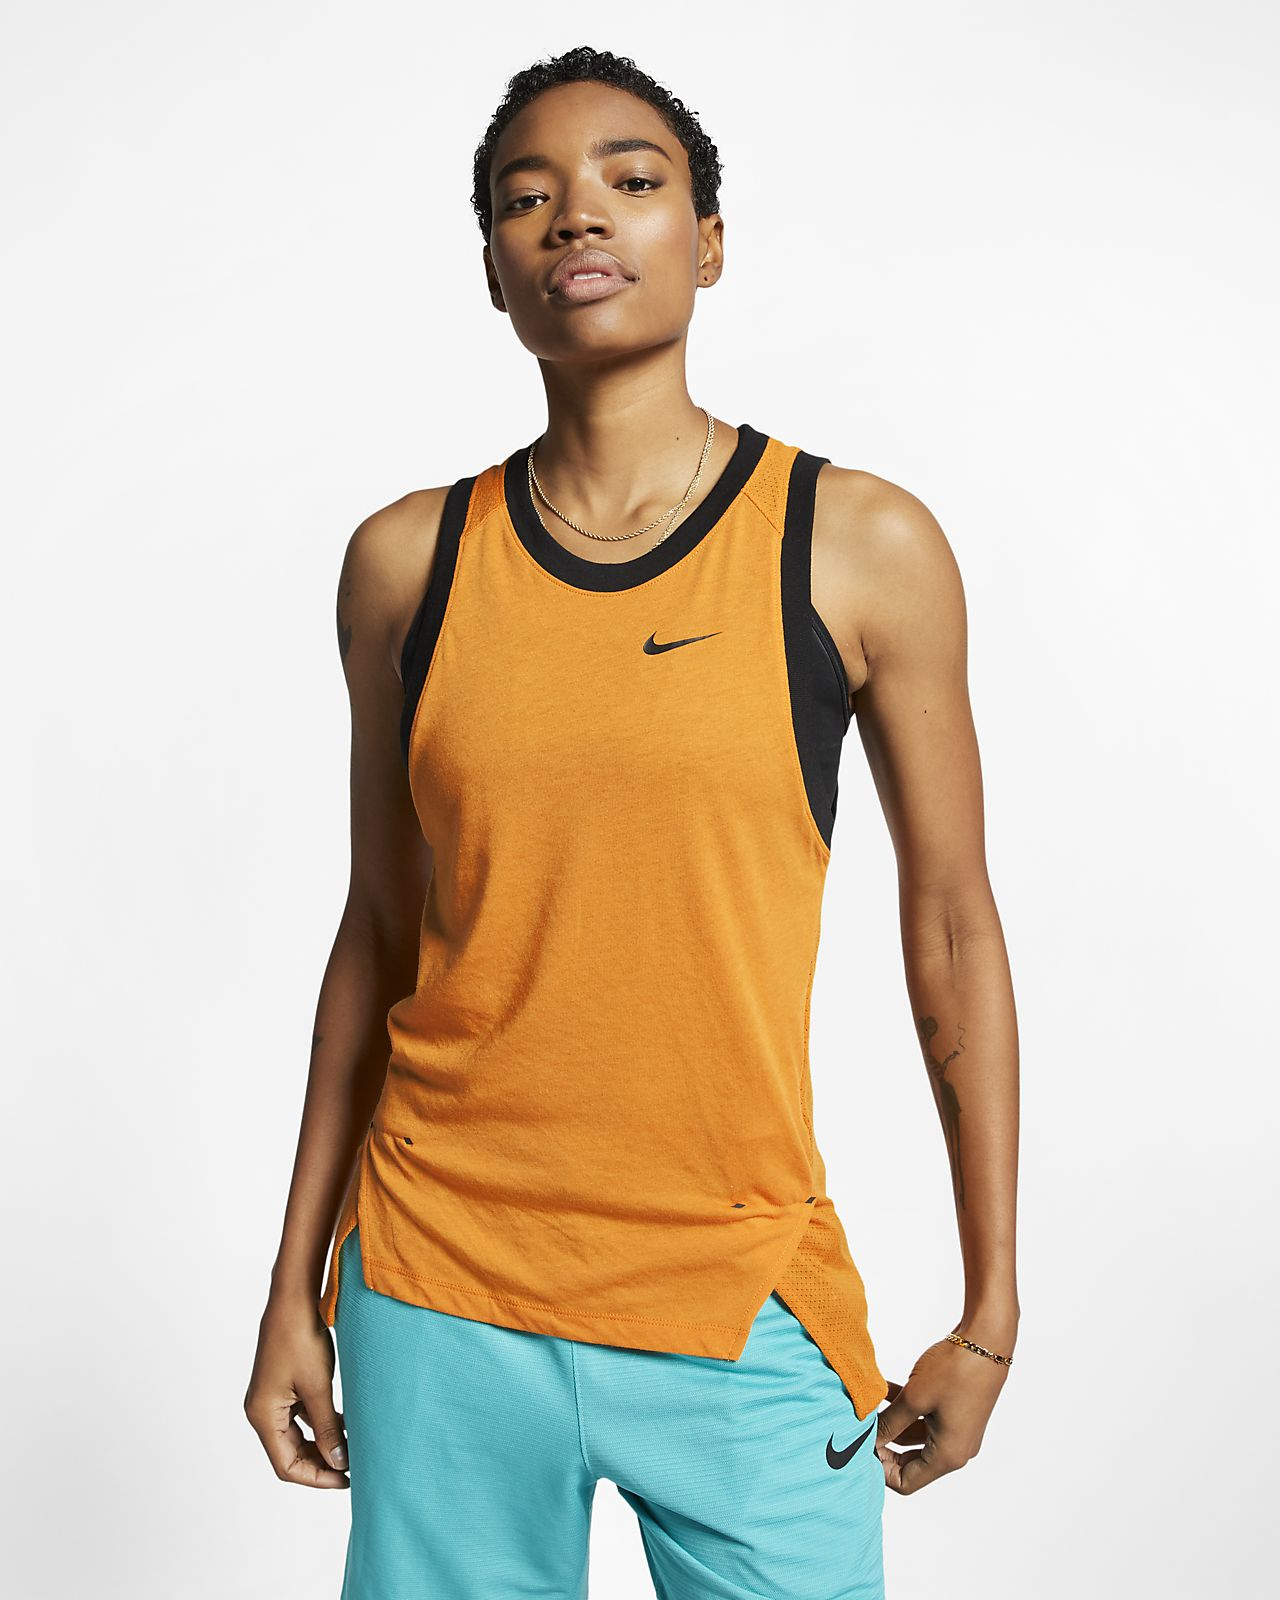 Nike Dri-FIT Elite Women's Basketball Tank